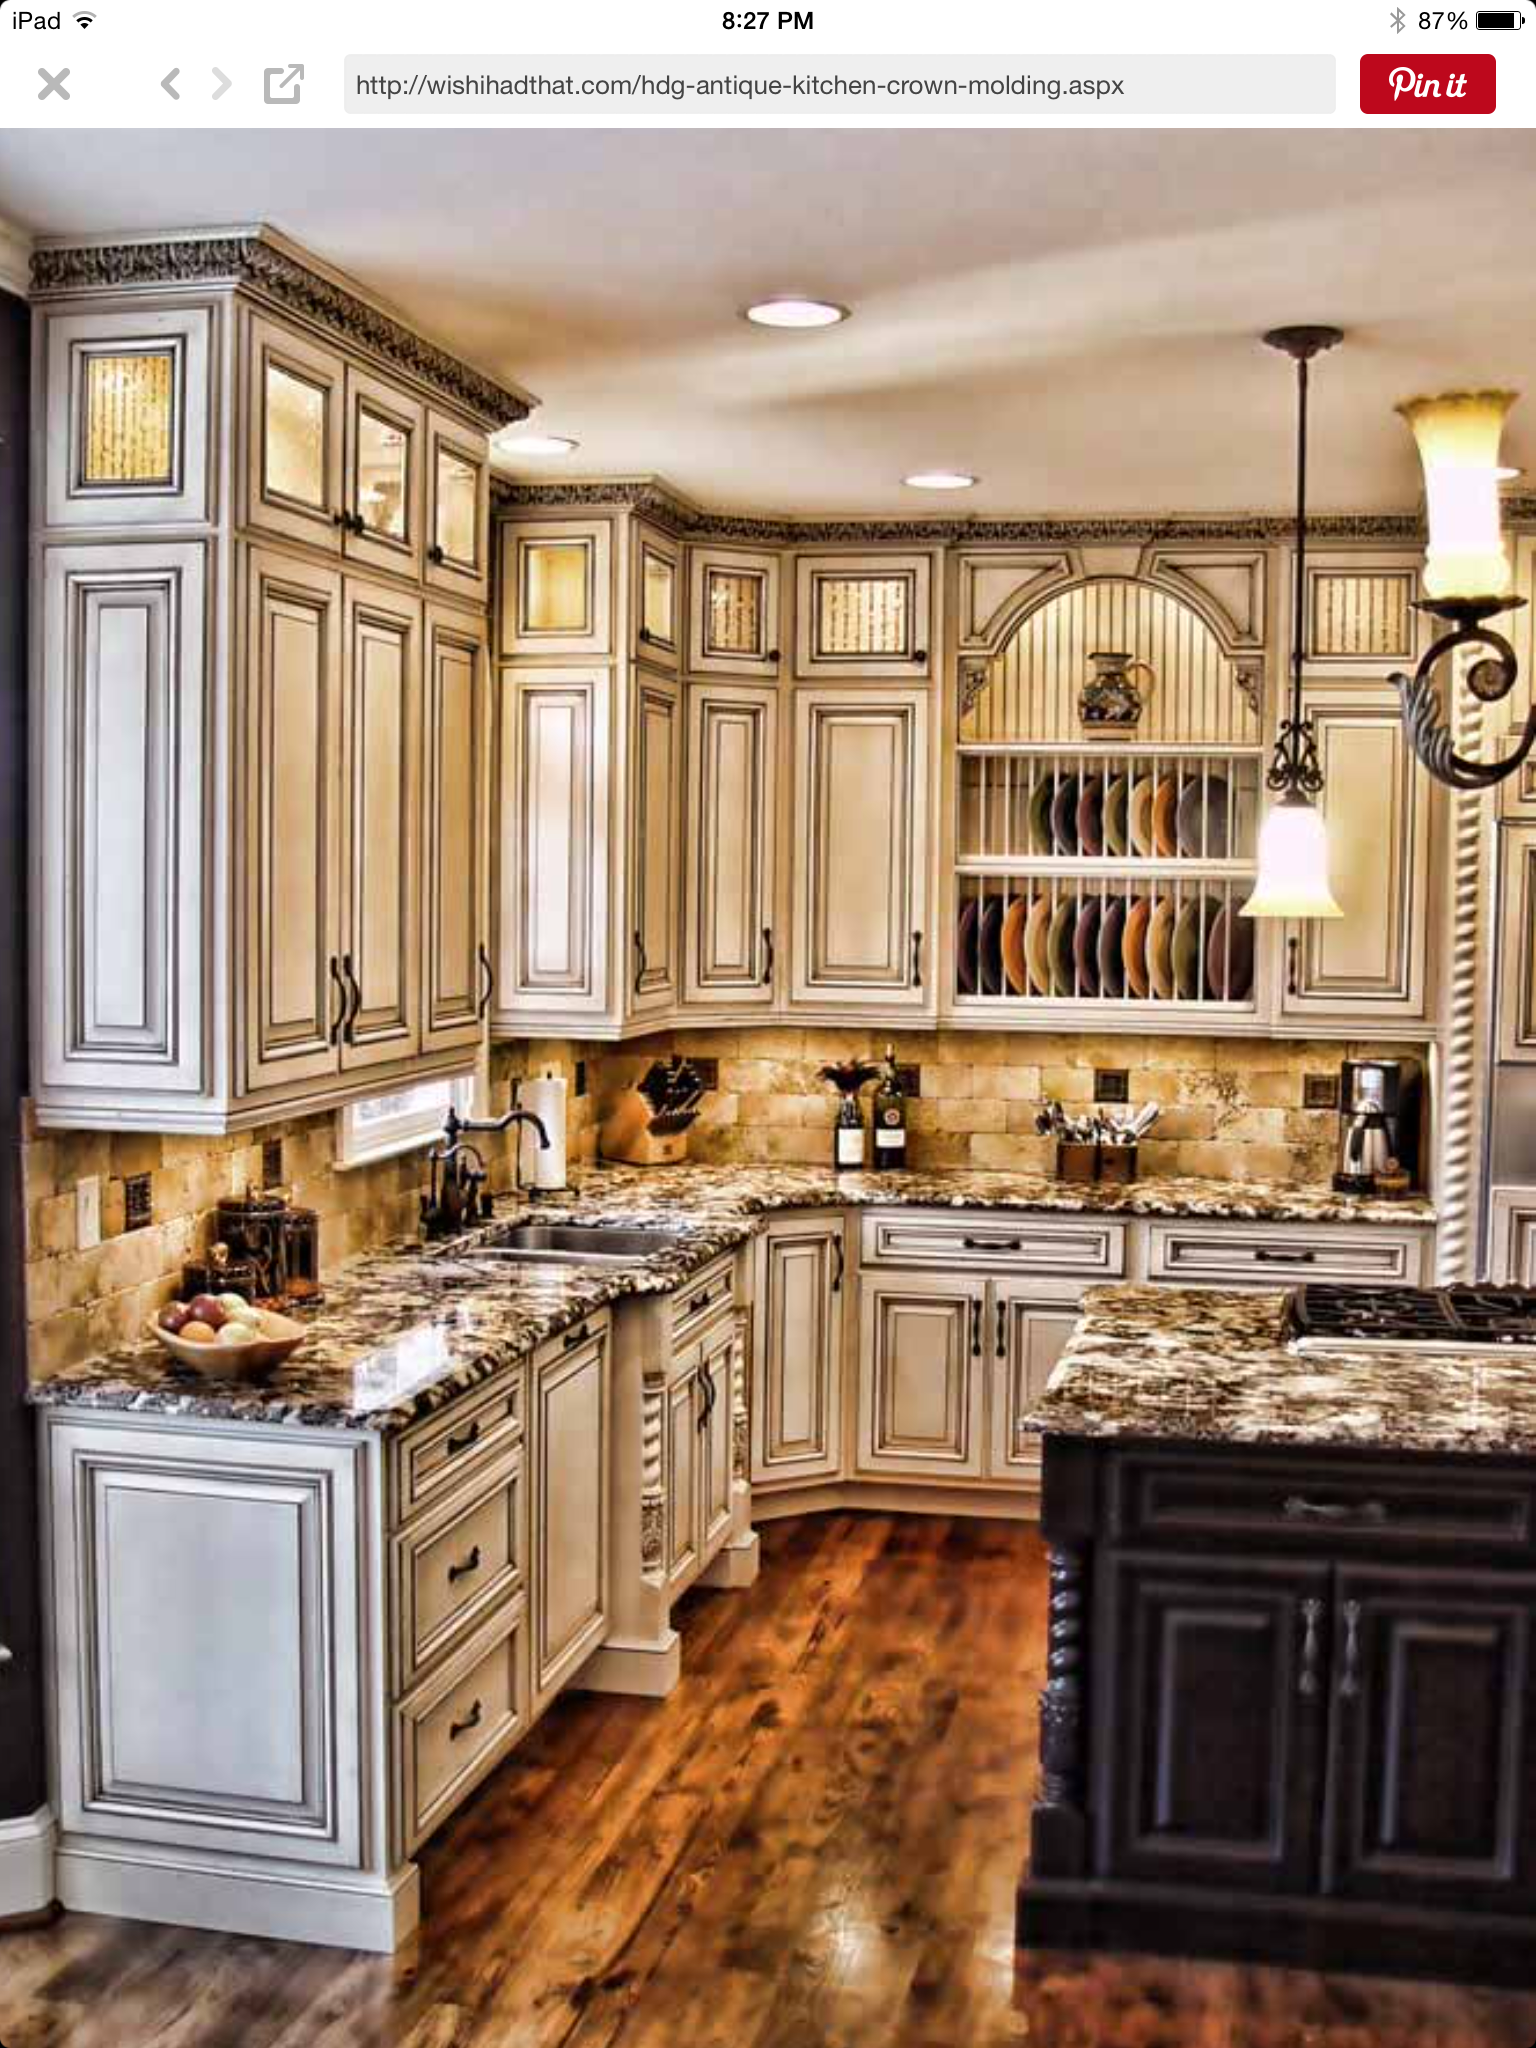 Pin By John Converse On Kitchen Rustic Kitchen Cabinets Antique White Kitchen Antique White Kitchen Cabinets